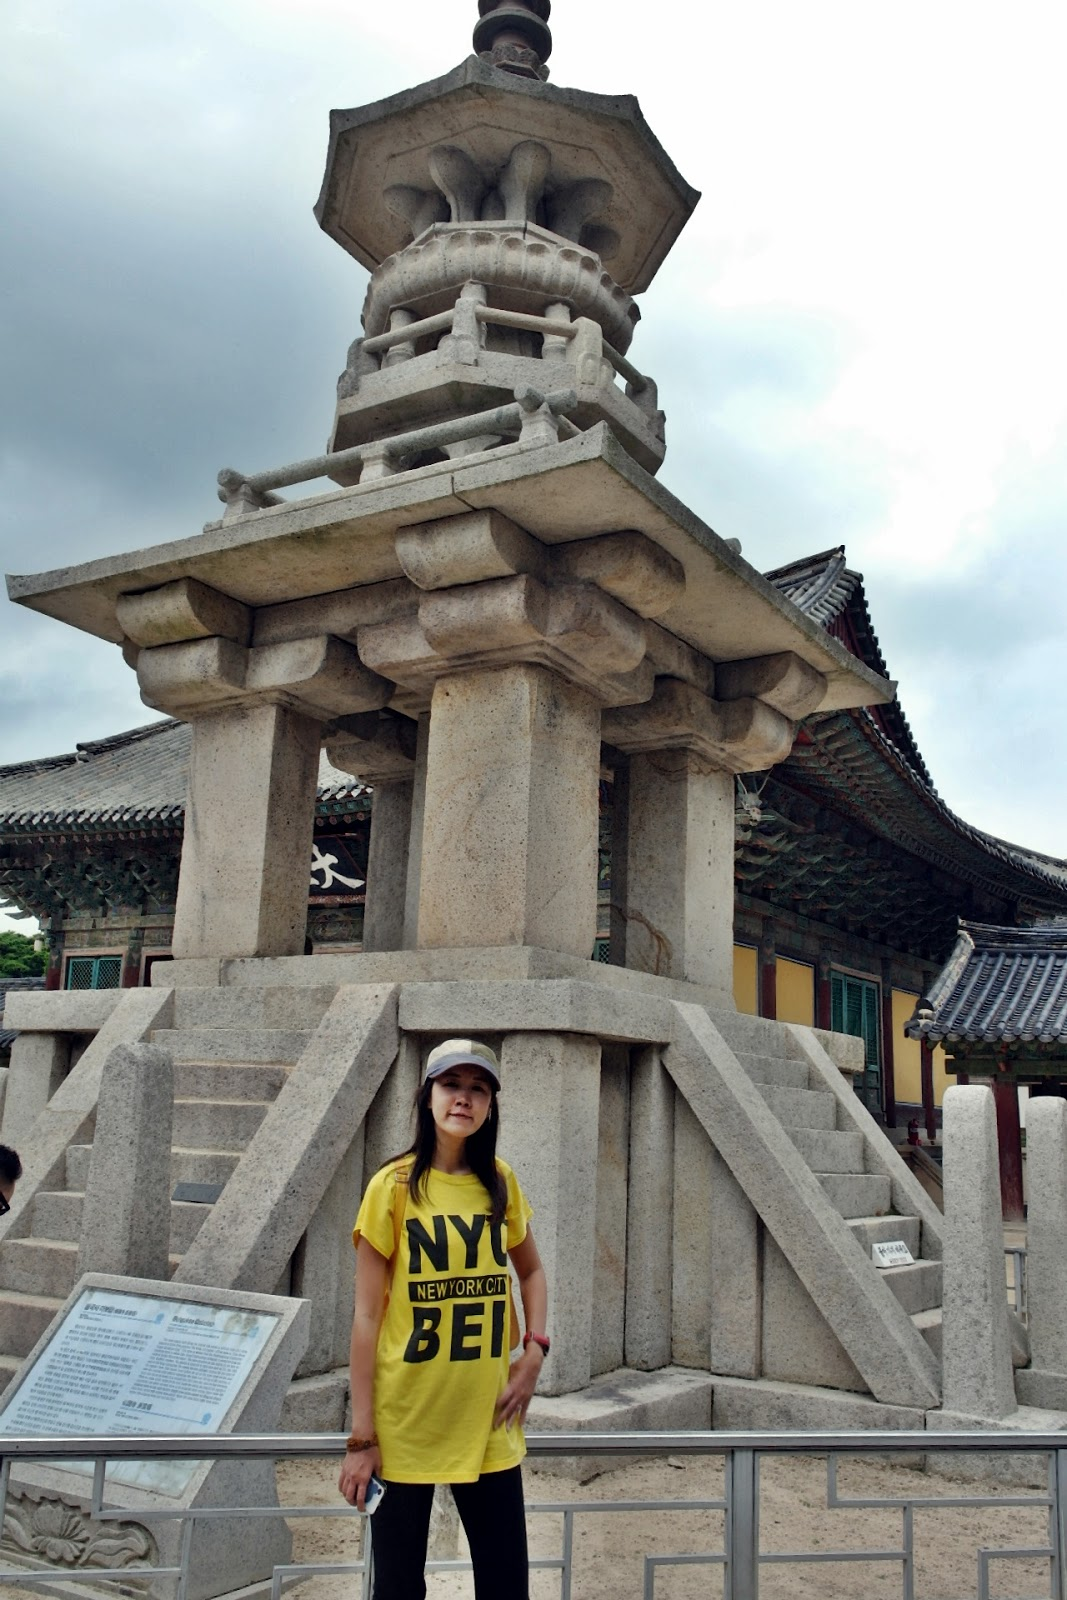 [Gyeongju] Bulguksa Temple and Seokgurum Grotto| meheartsoul.blogspot.com